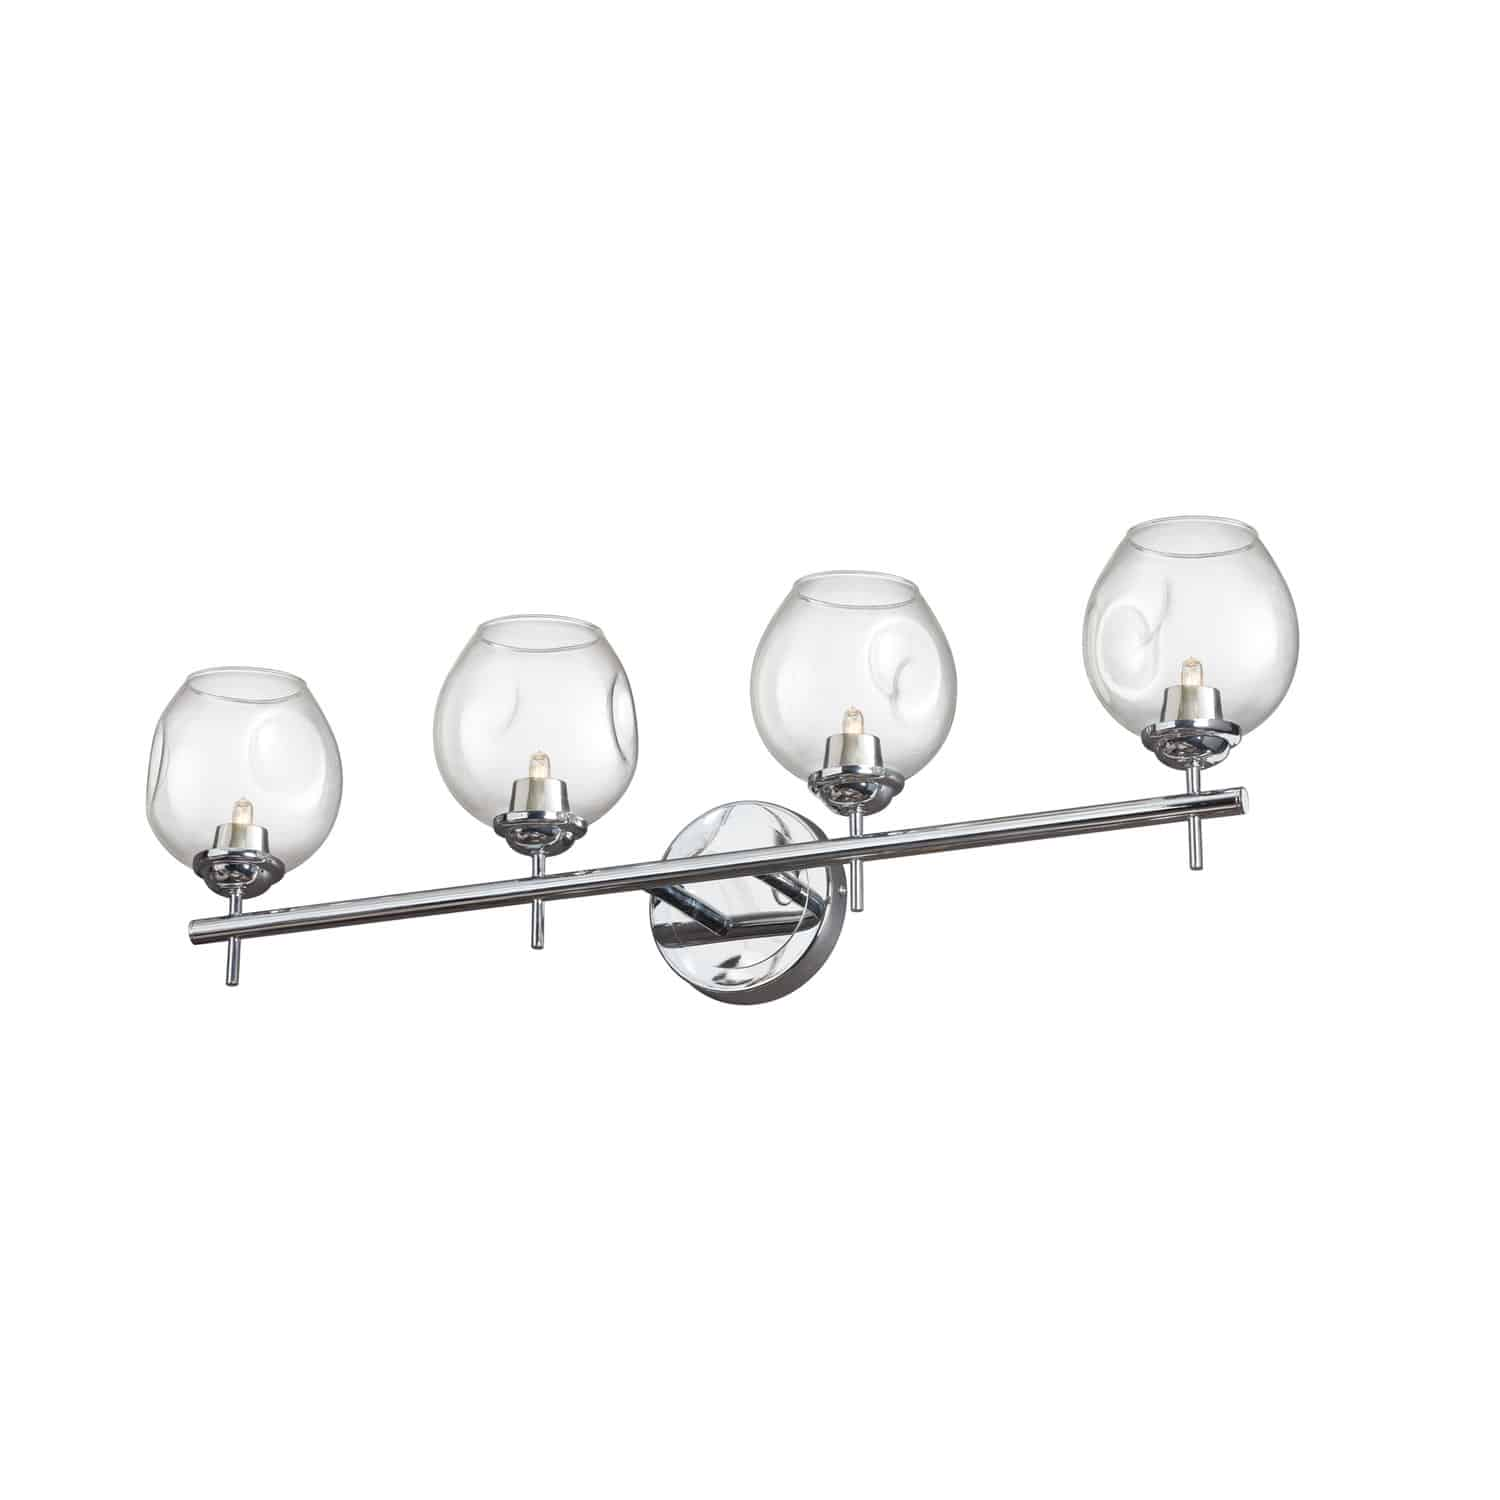 4 Light Halogen Vanity Polished Chrome with Clear Glass